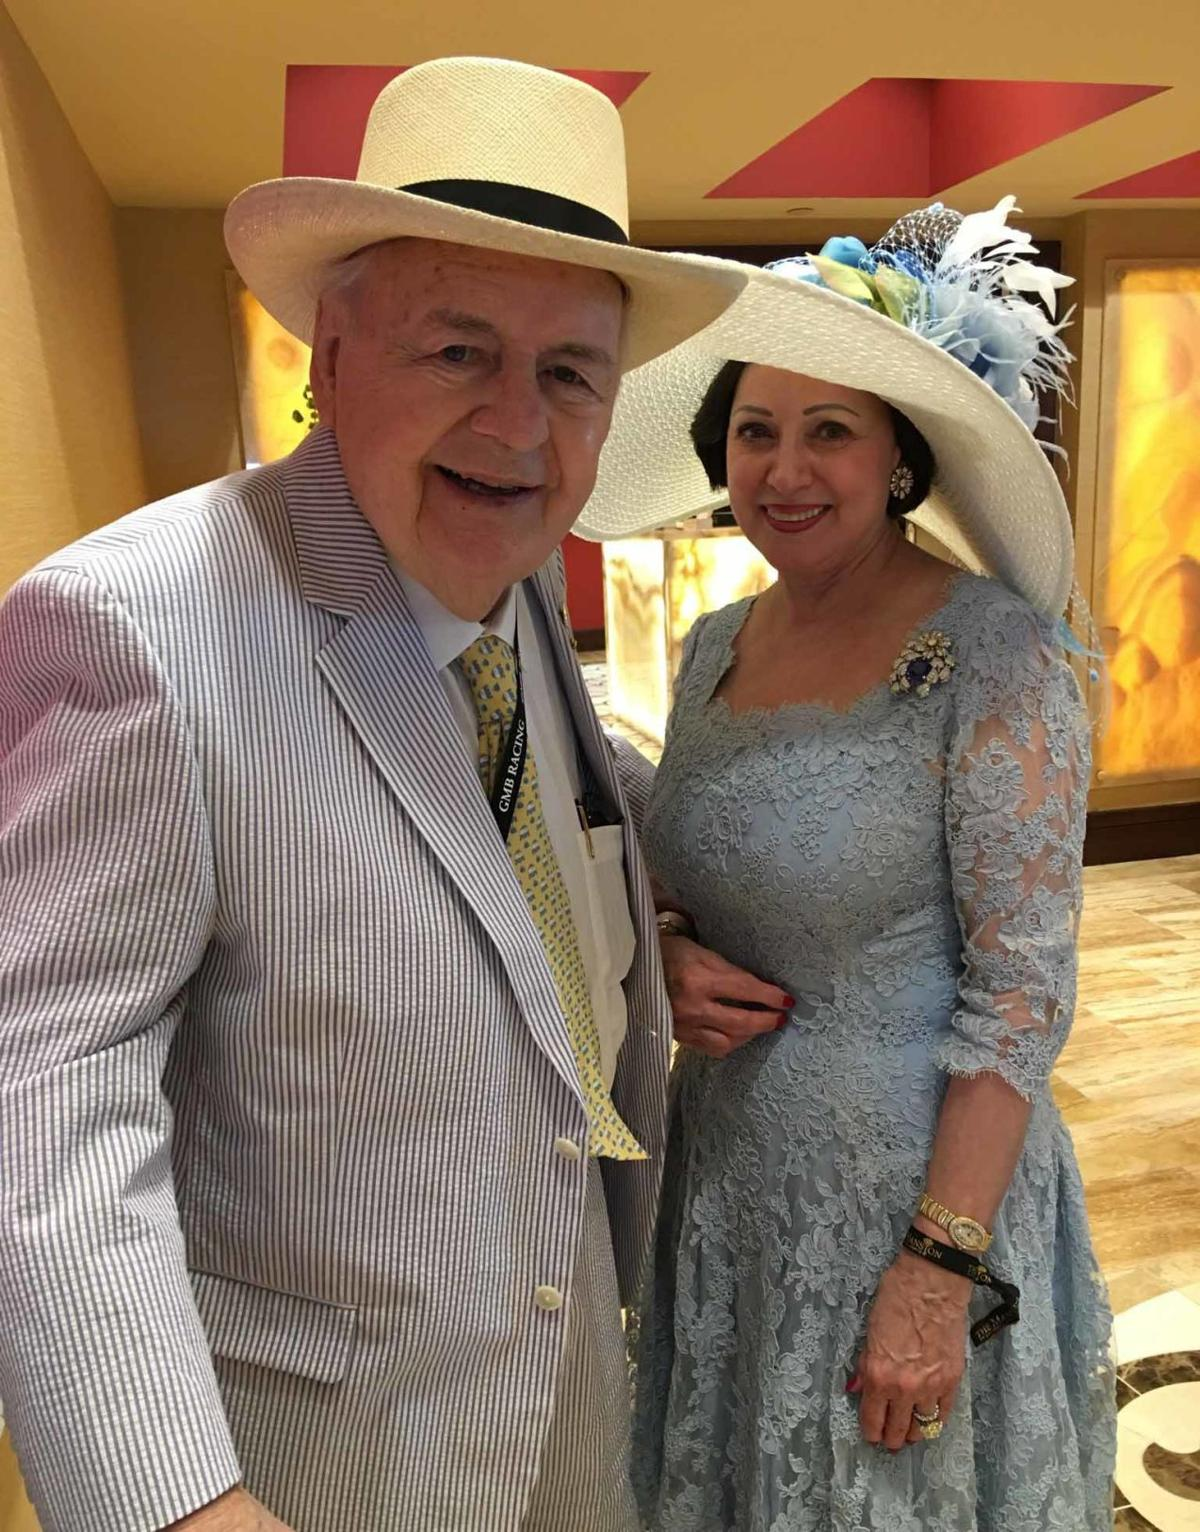 Tom and Gayle Benson having success with a different kind of running game